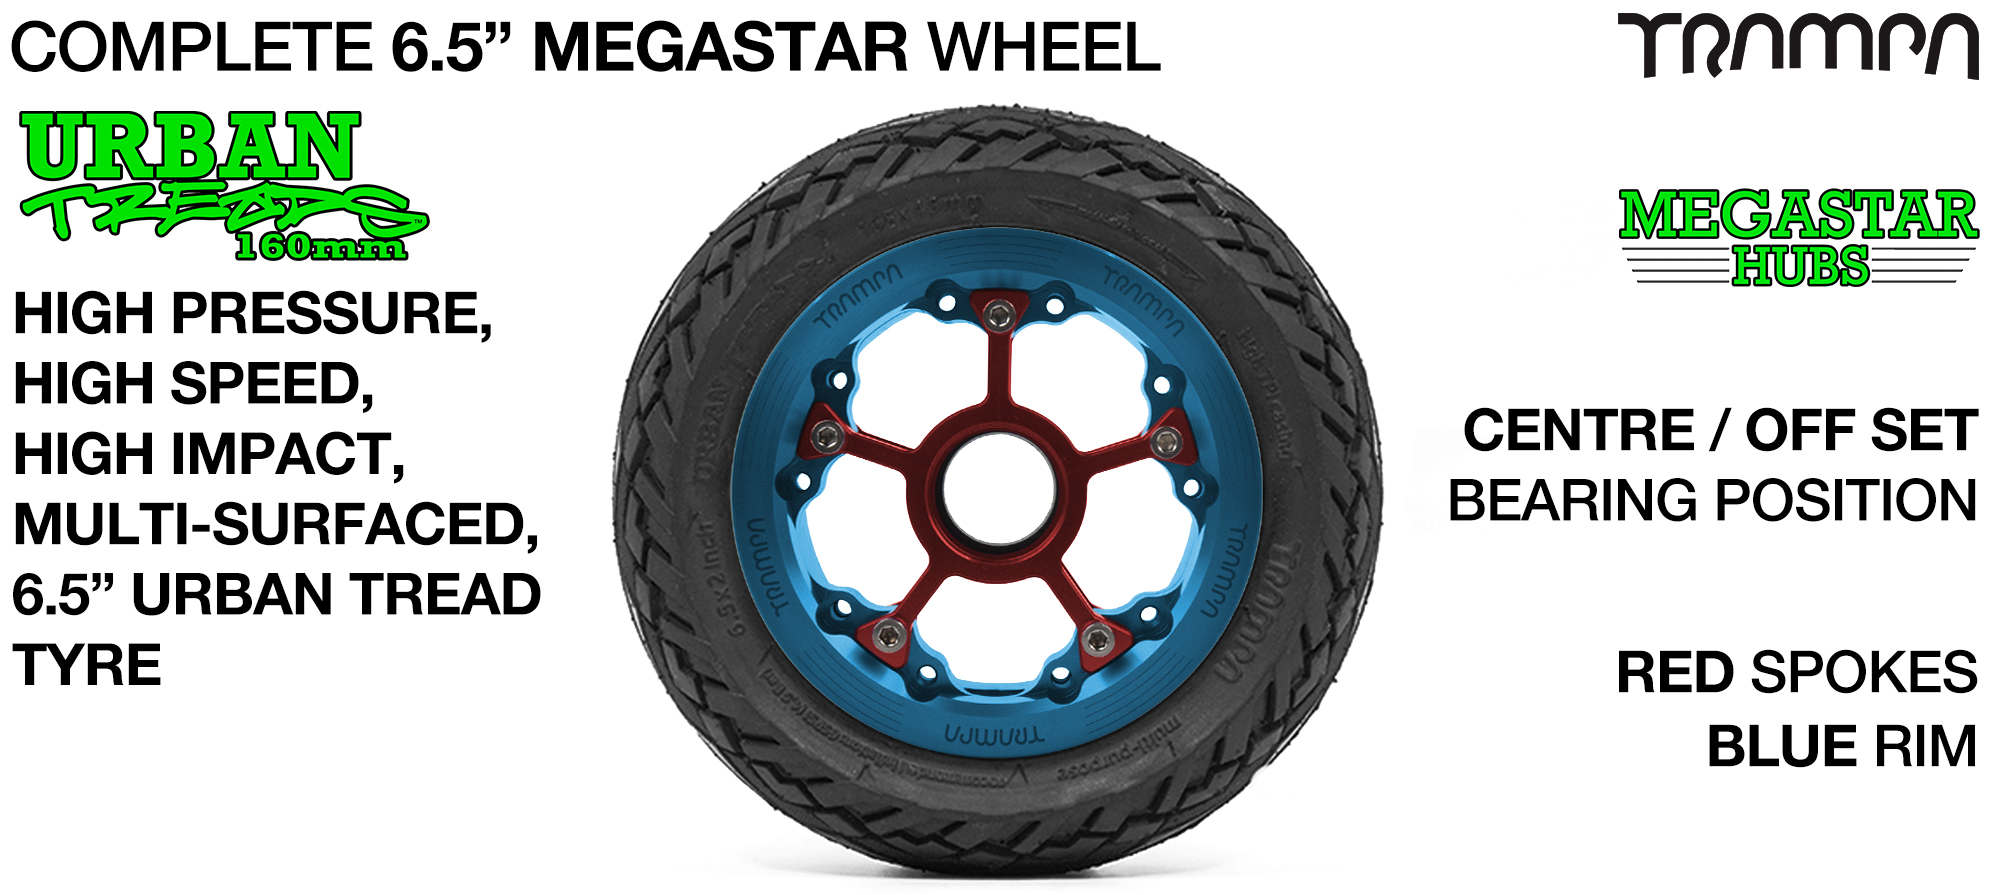 BLUE MEGASTAR Rims with RED Spokes & 6.5 Inch URBAN Treads Tyres